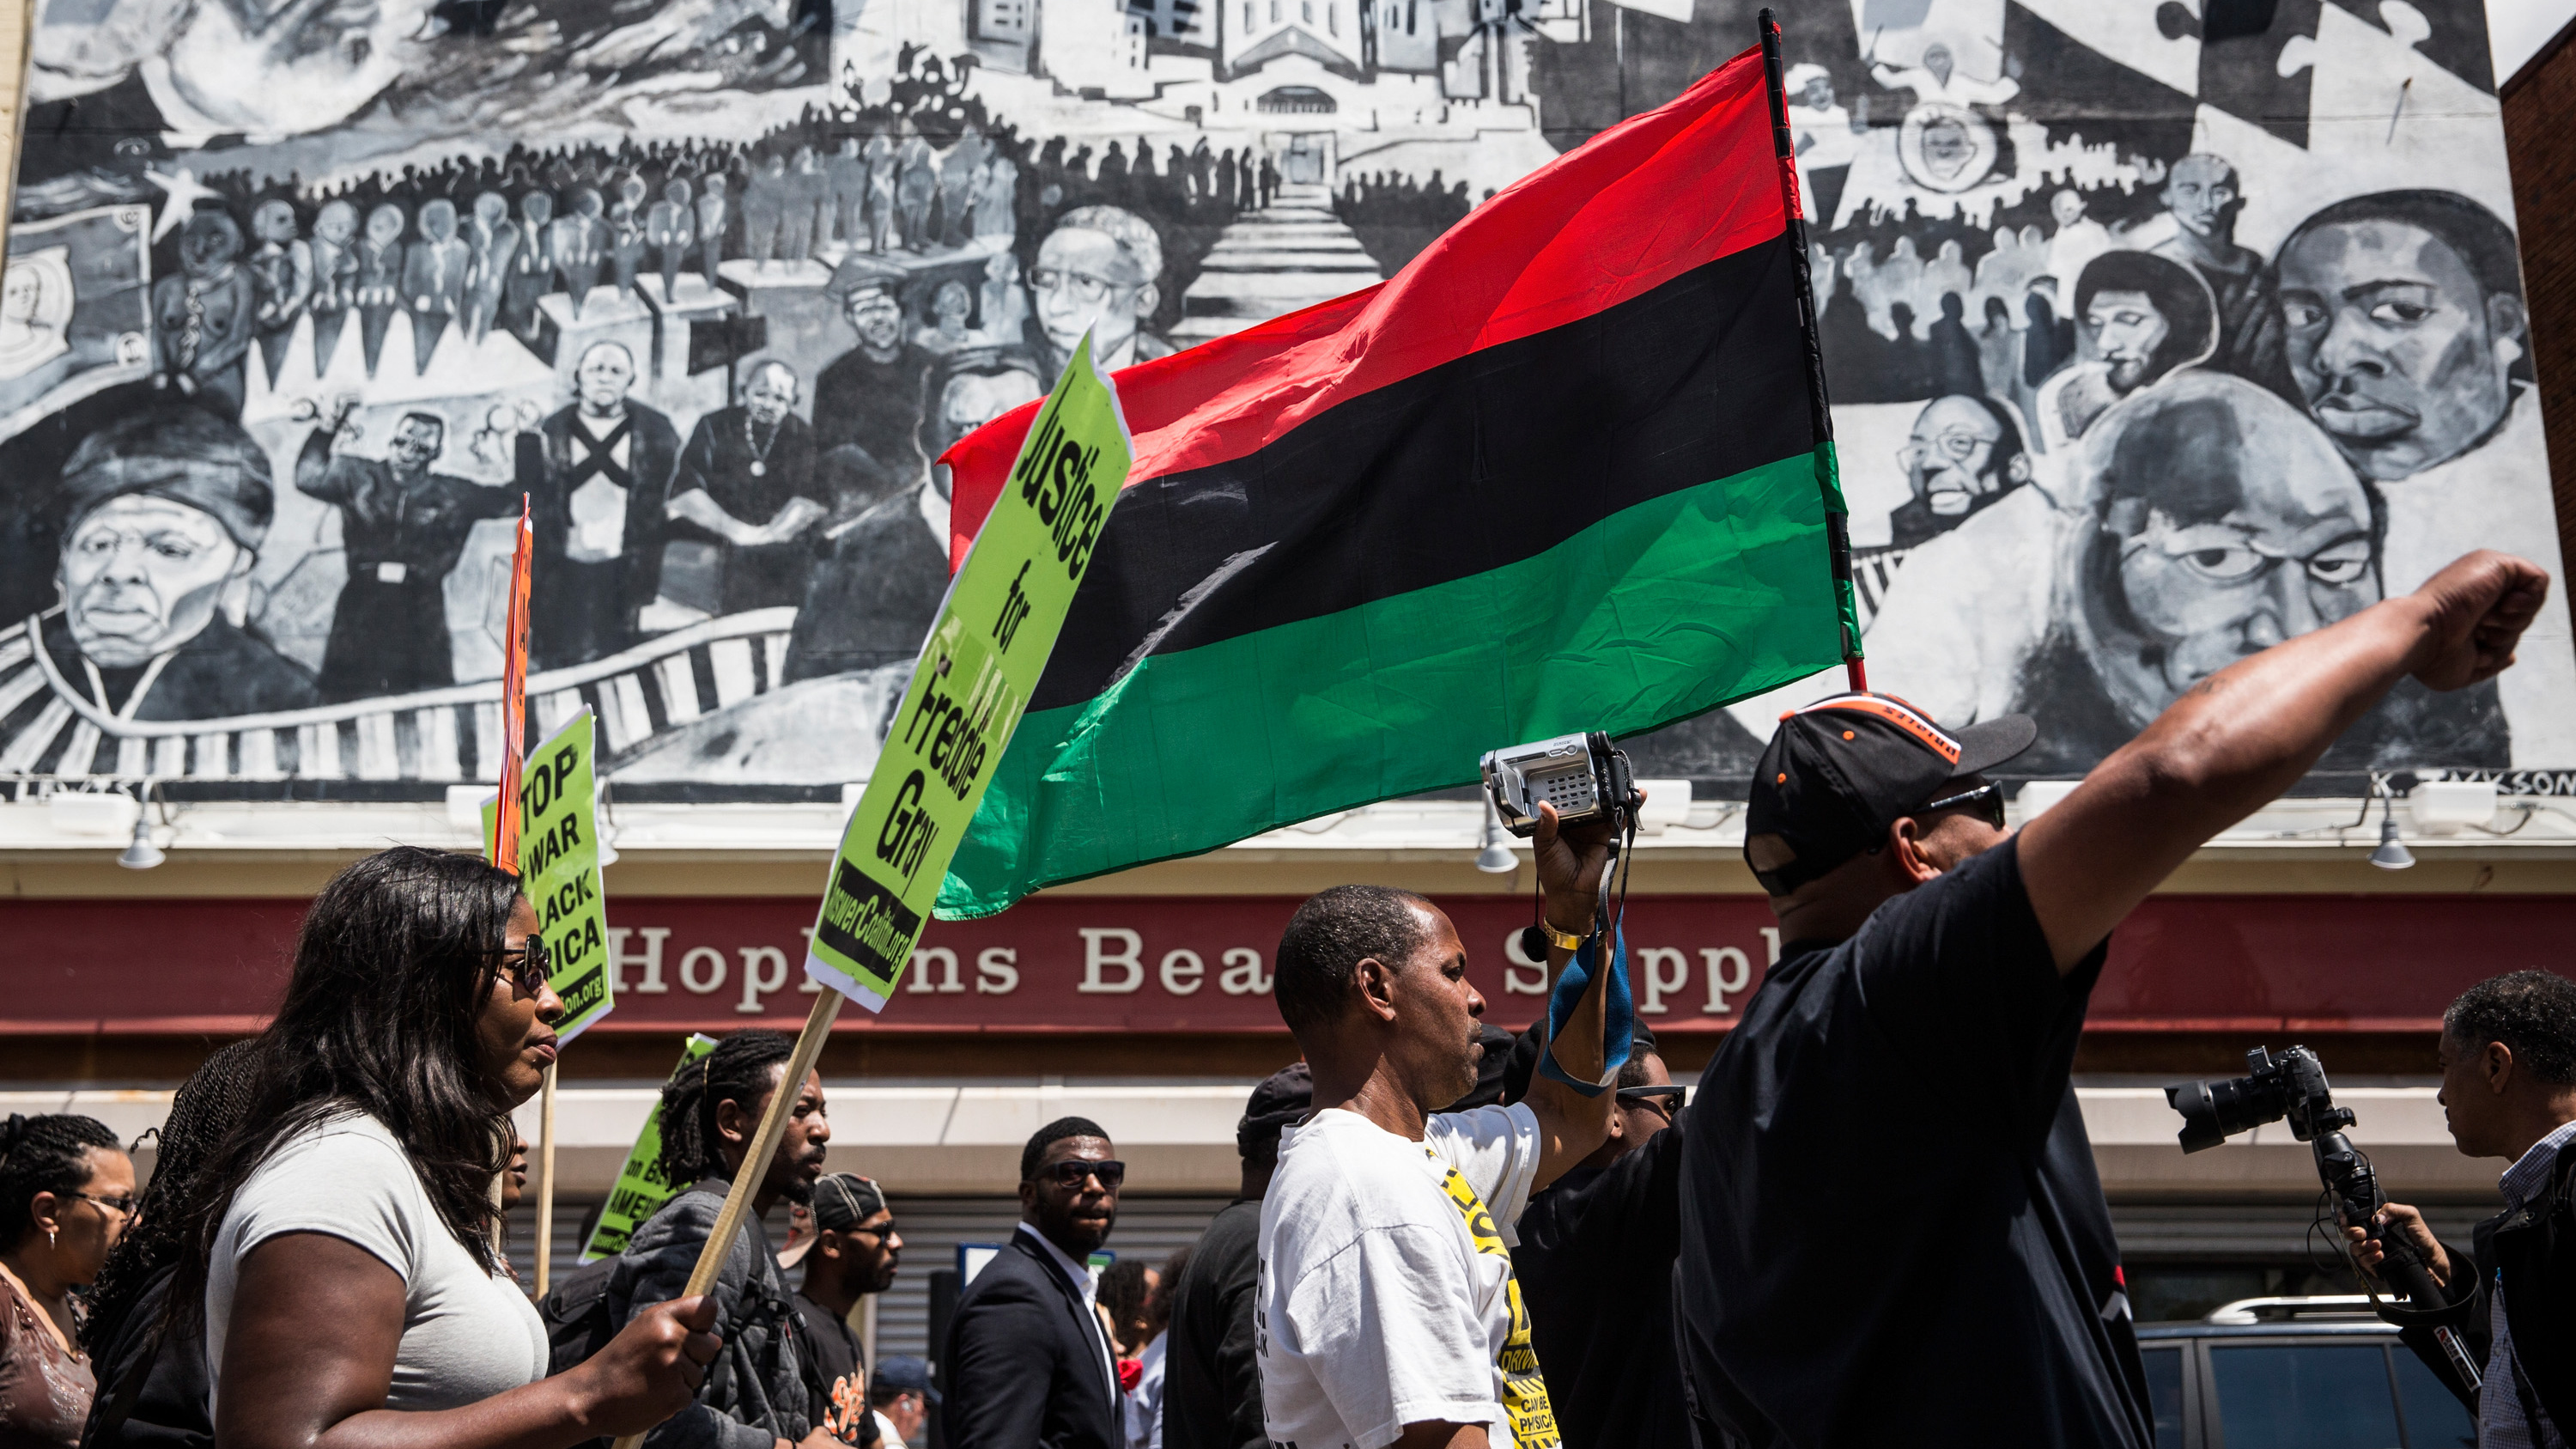 Baltimore Activists Hold 'Victory Rally' After Charges In Gray Death